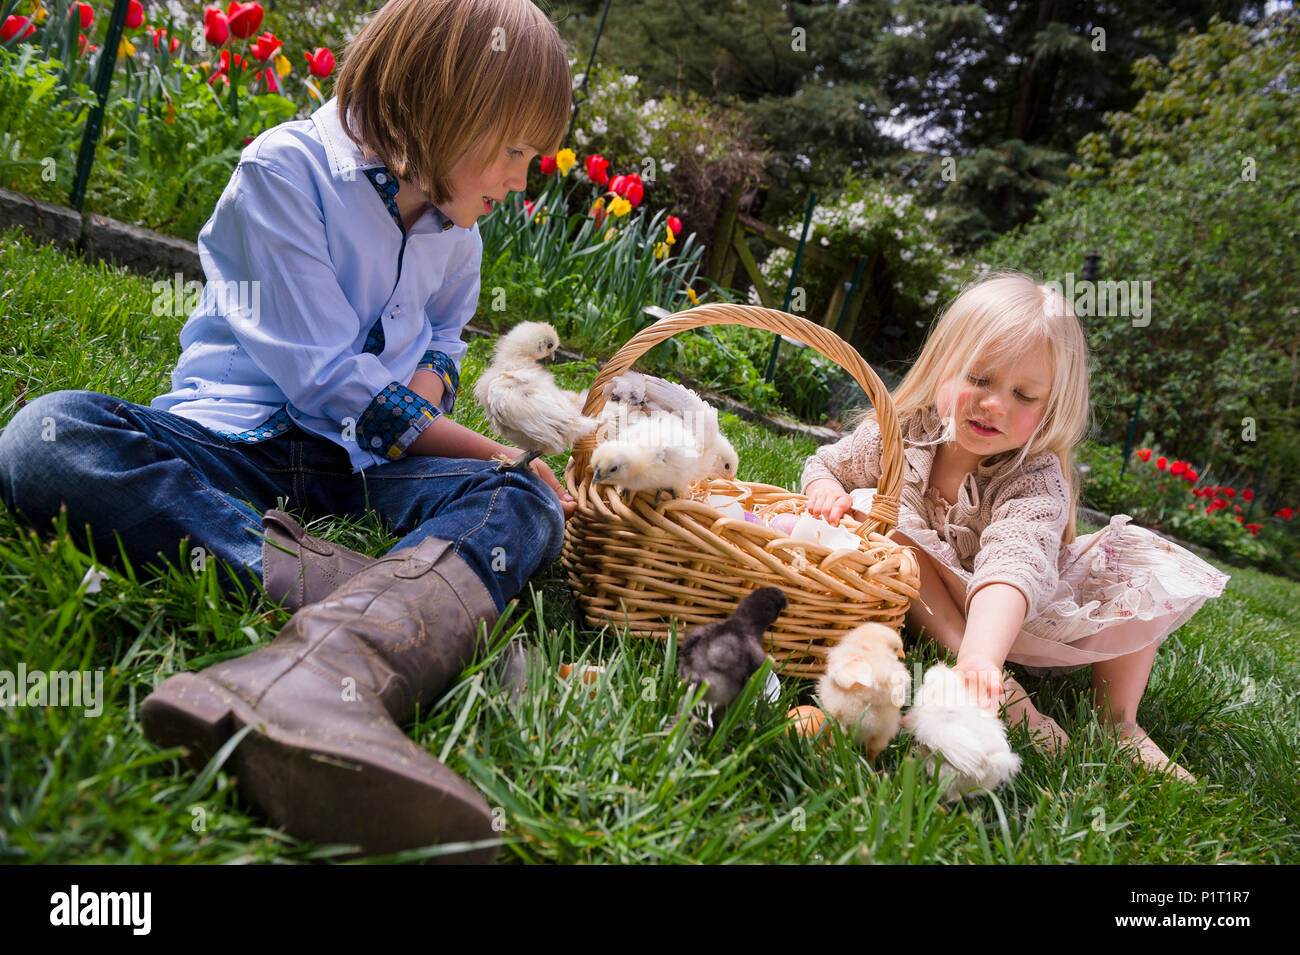 Young brother and sister with basket full of baby chickens in a rural garden setting - Stock Image